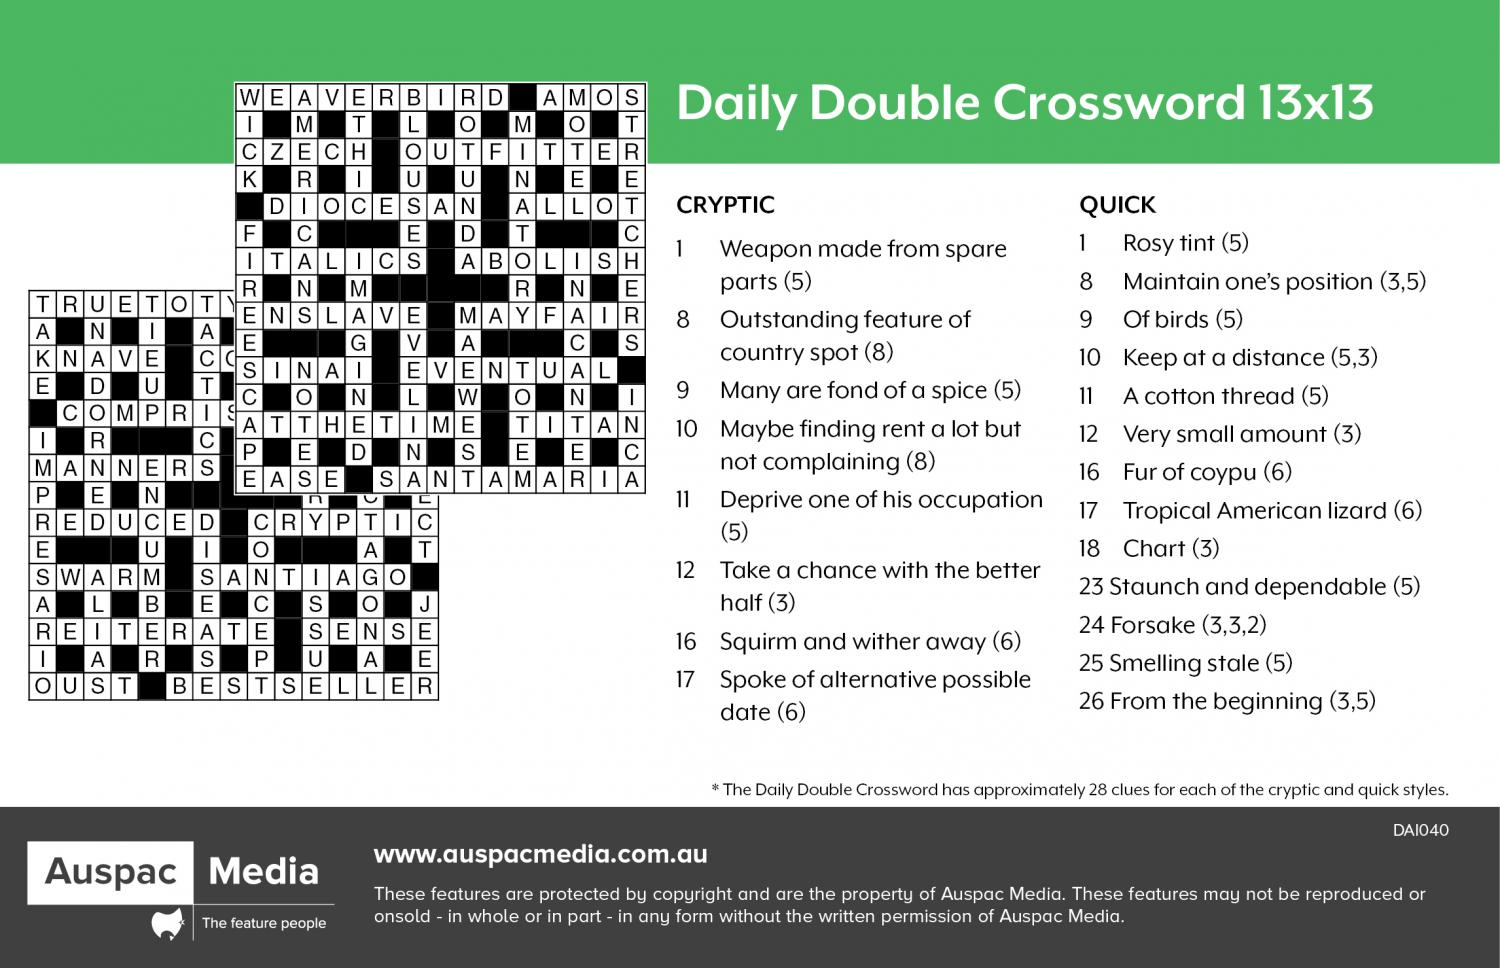 Thumbnail for Daily Double Crossword 13x13